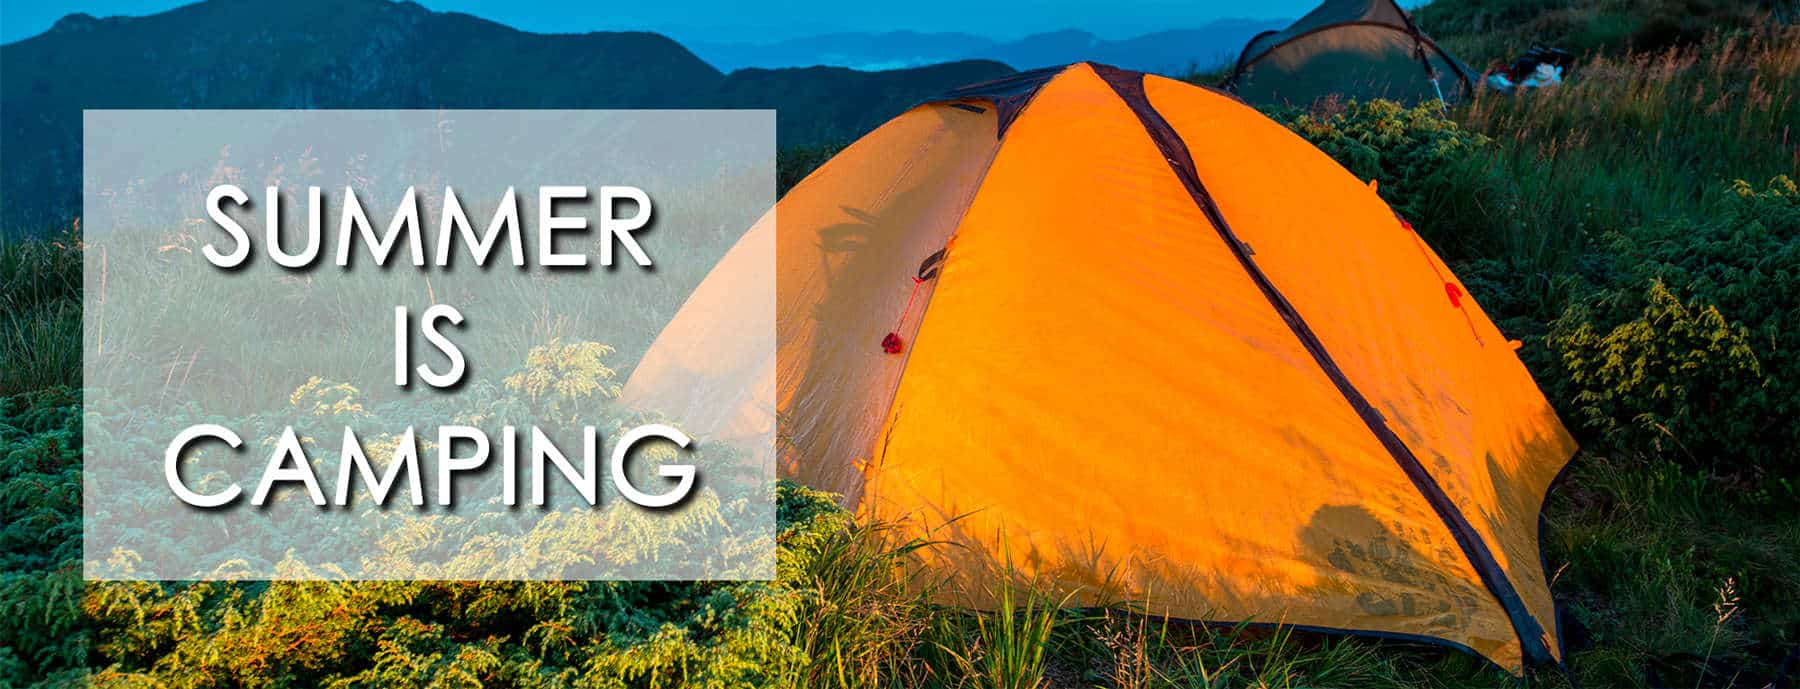 Summer is Camping